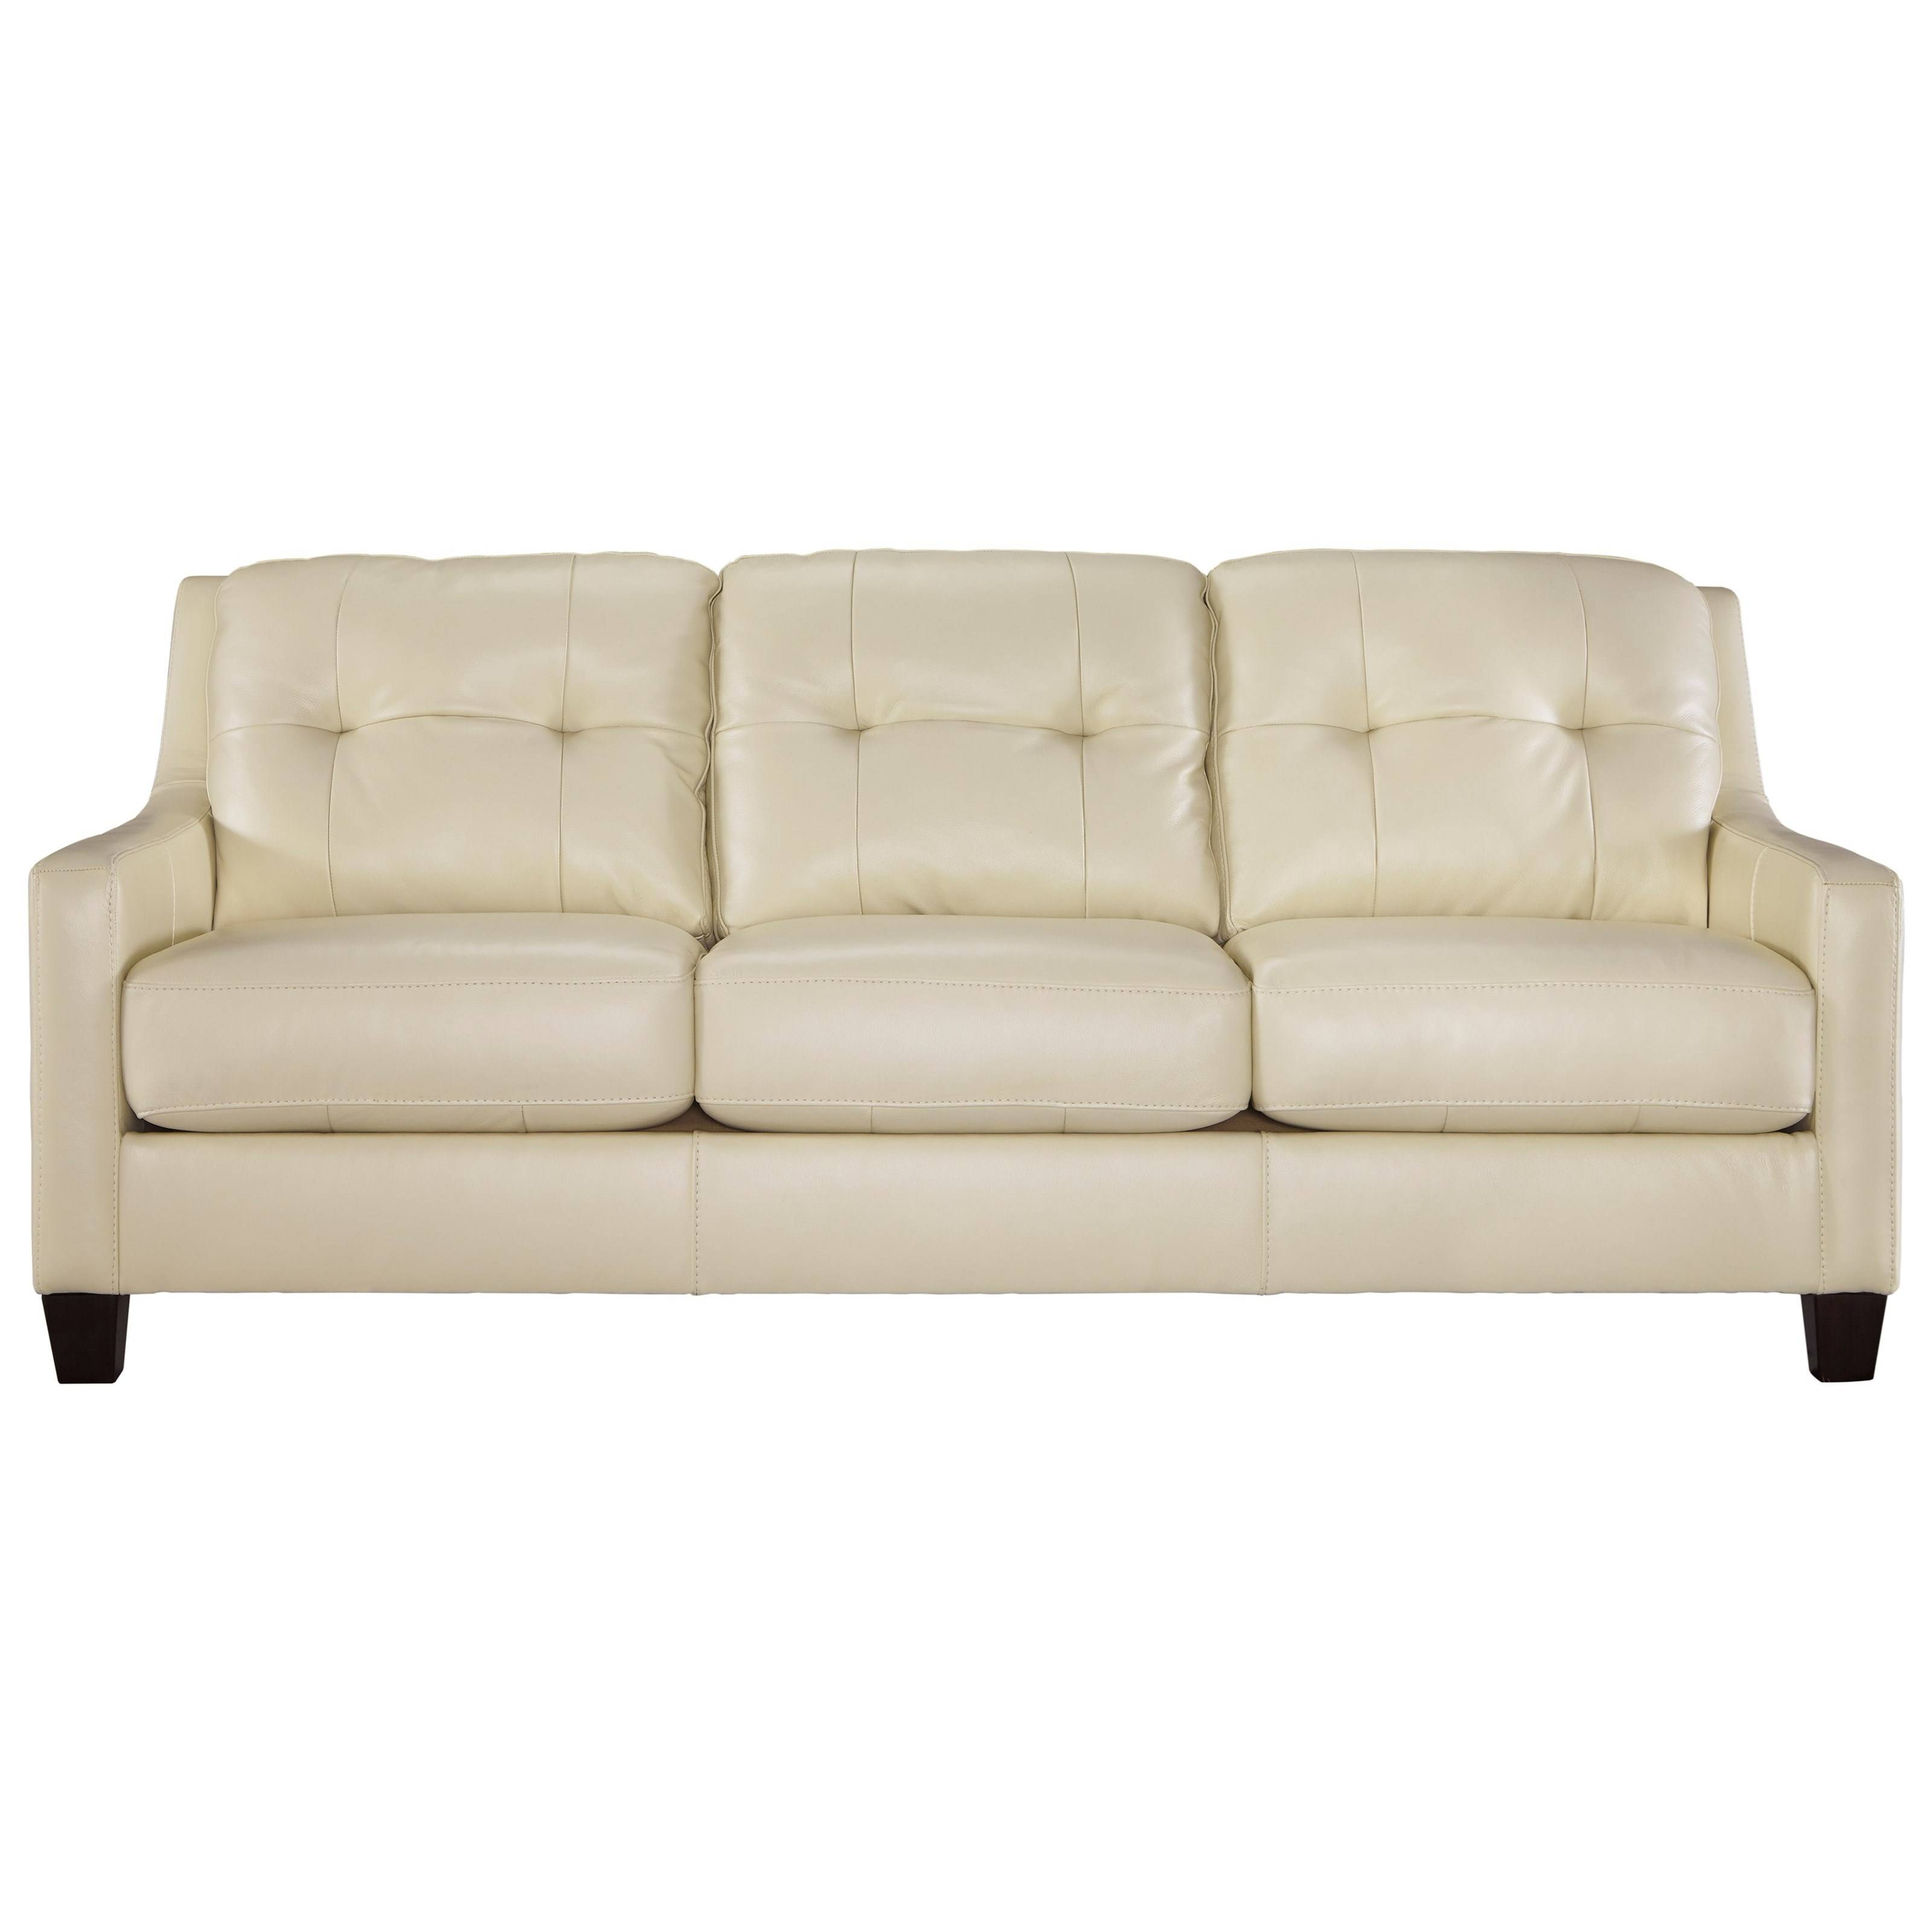 Signature Designashley O'kean Contemporary Leather Match Sofa Intended For Ashley Tufted Sofa (View 9 of 30)